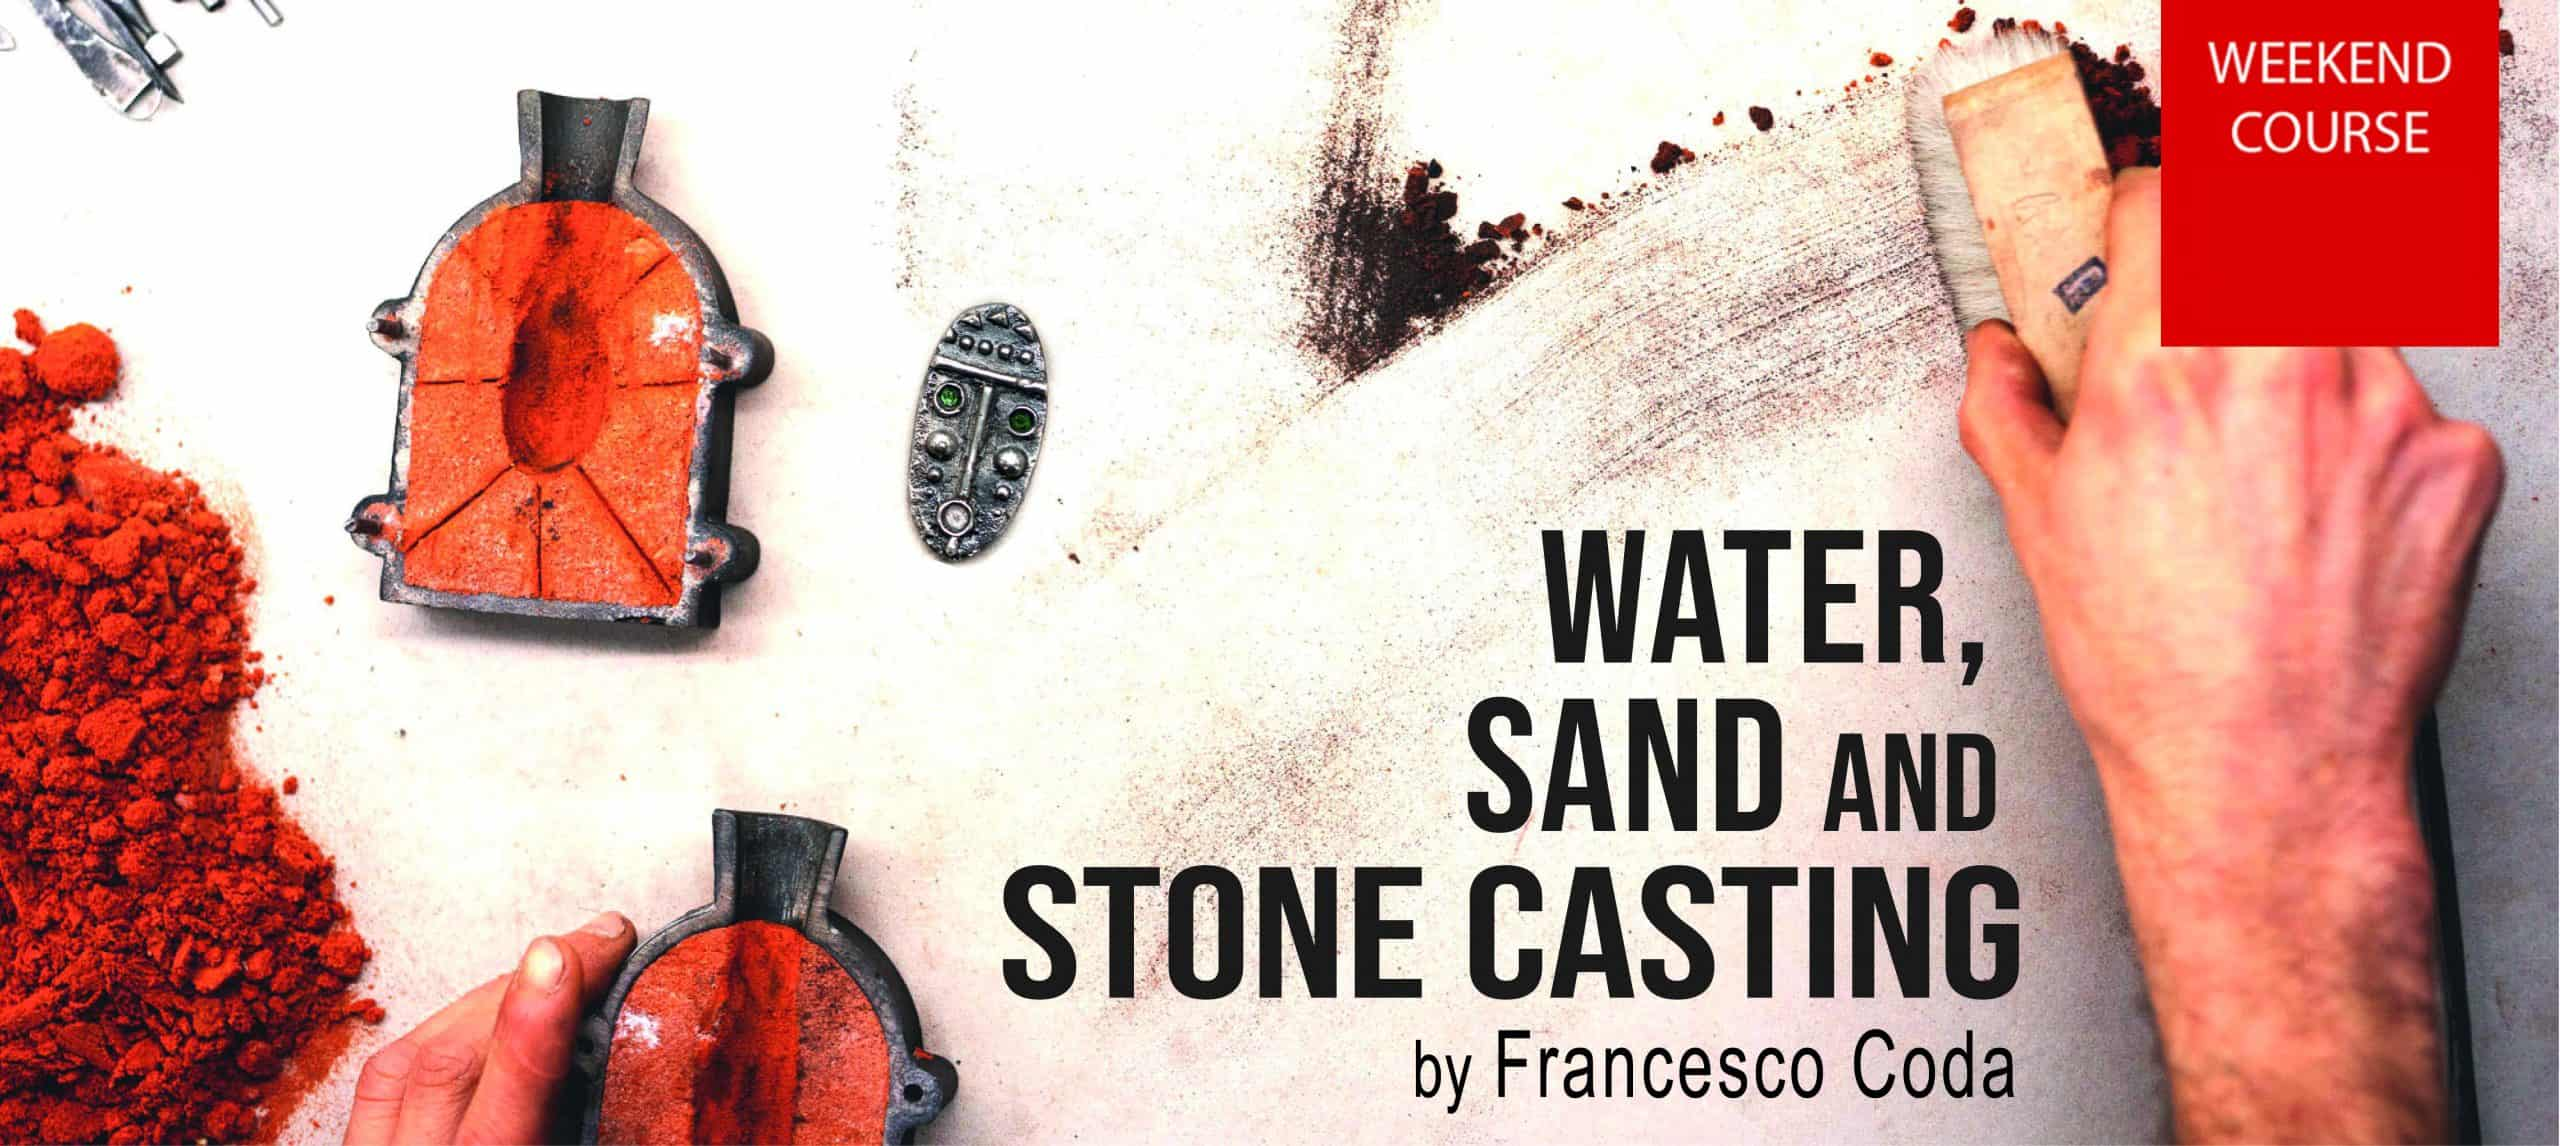 Water, Sand and Stone Casting by Francesco Coda